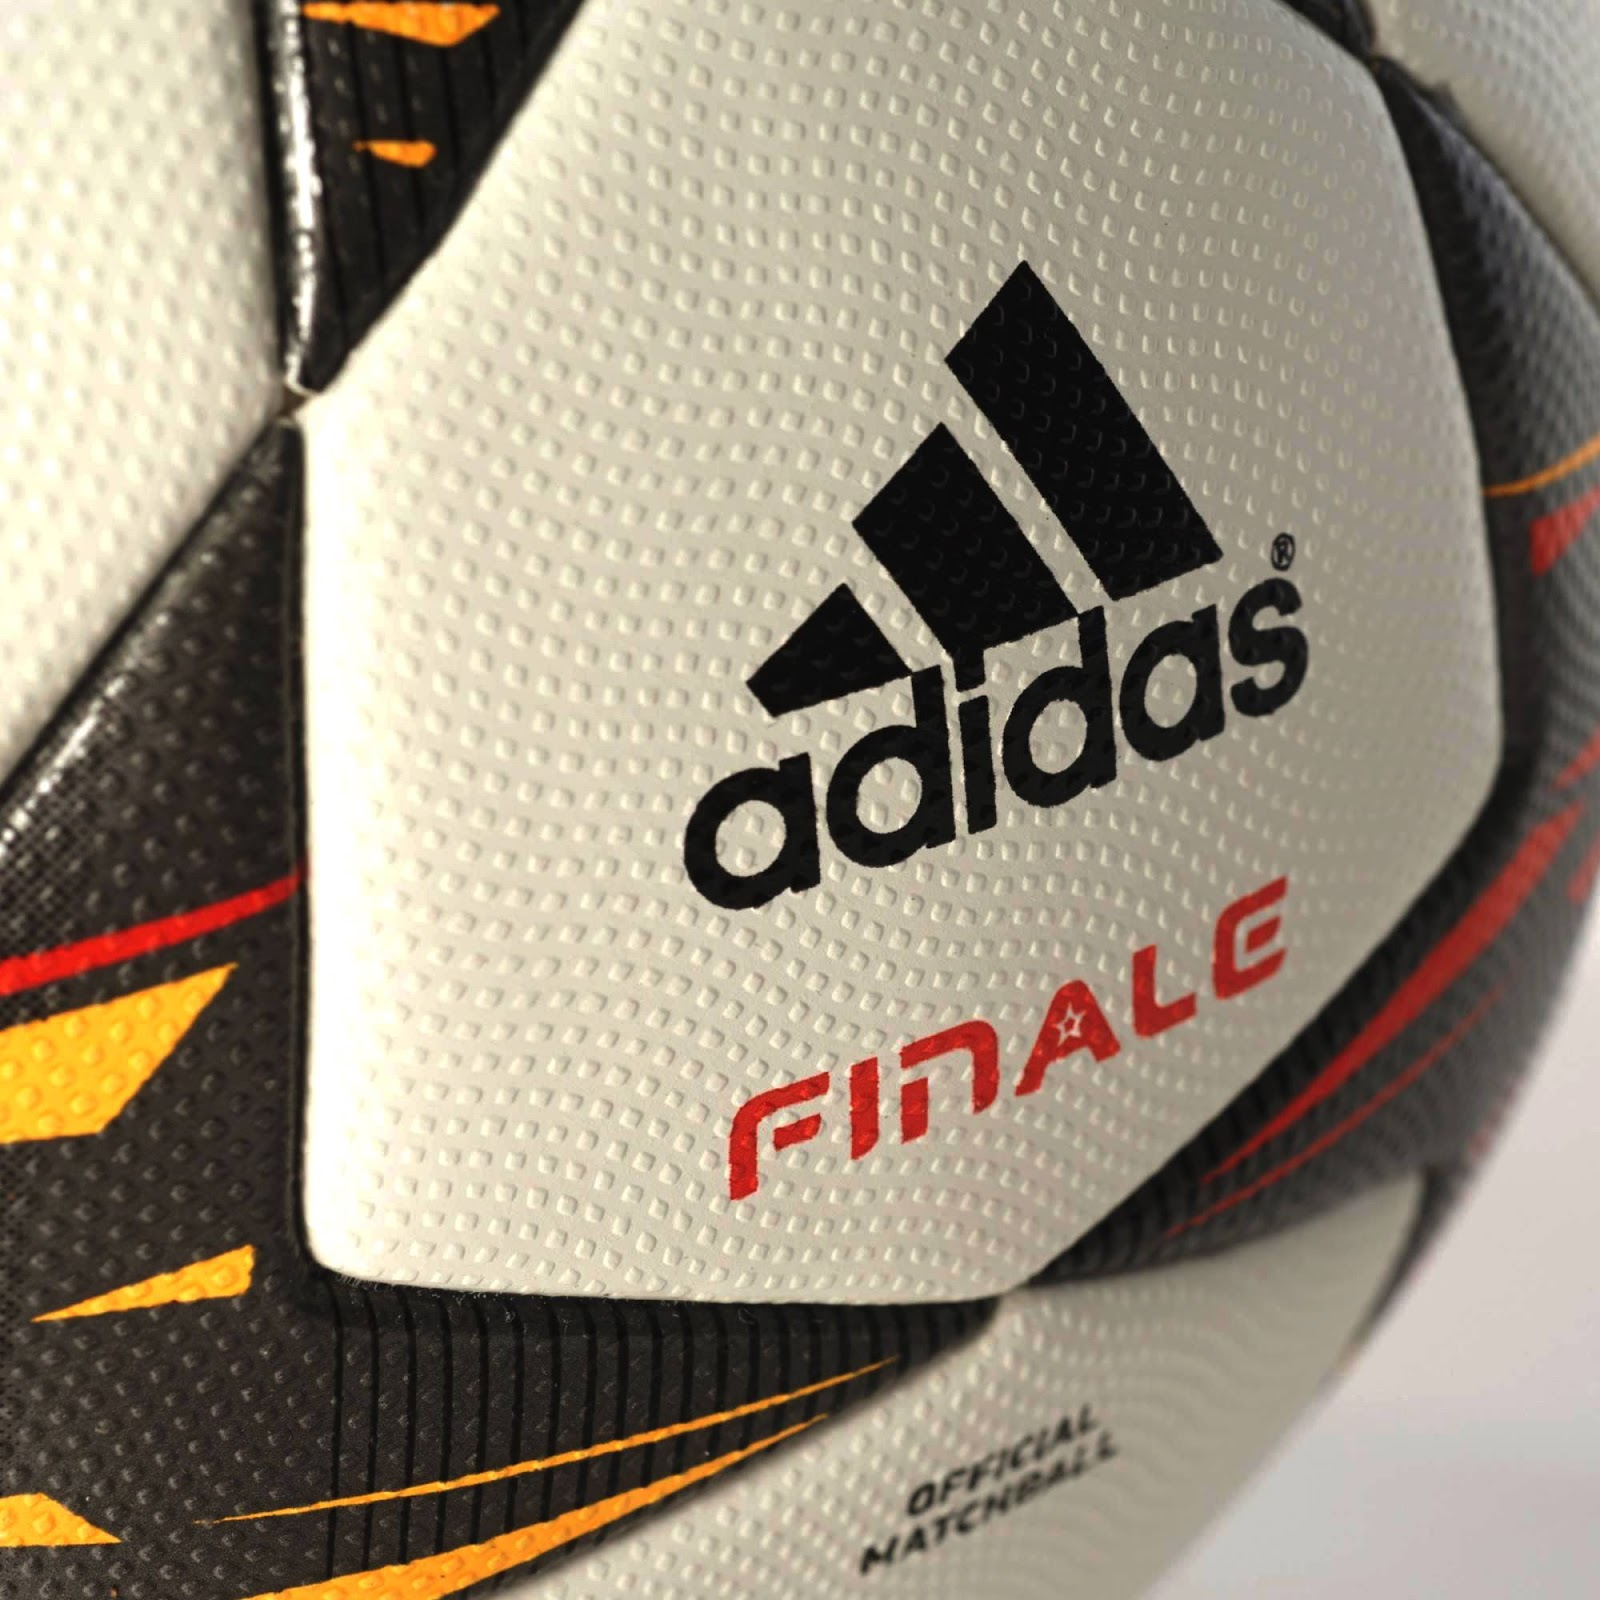 Cuadro Champions League 2014 Adidas Finale 14 14 15 Champions League Ball